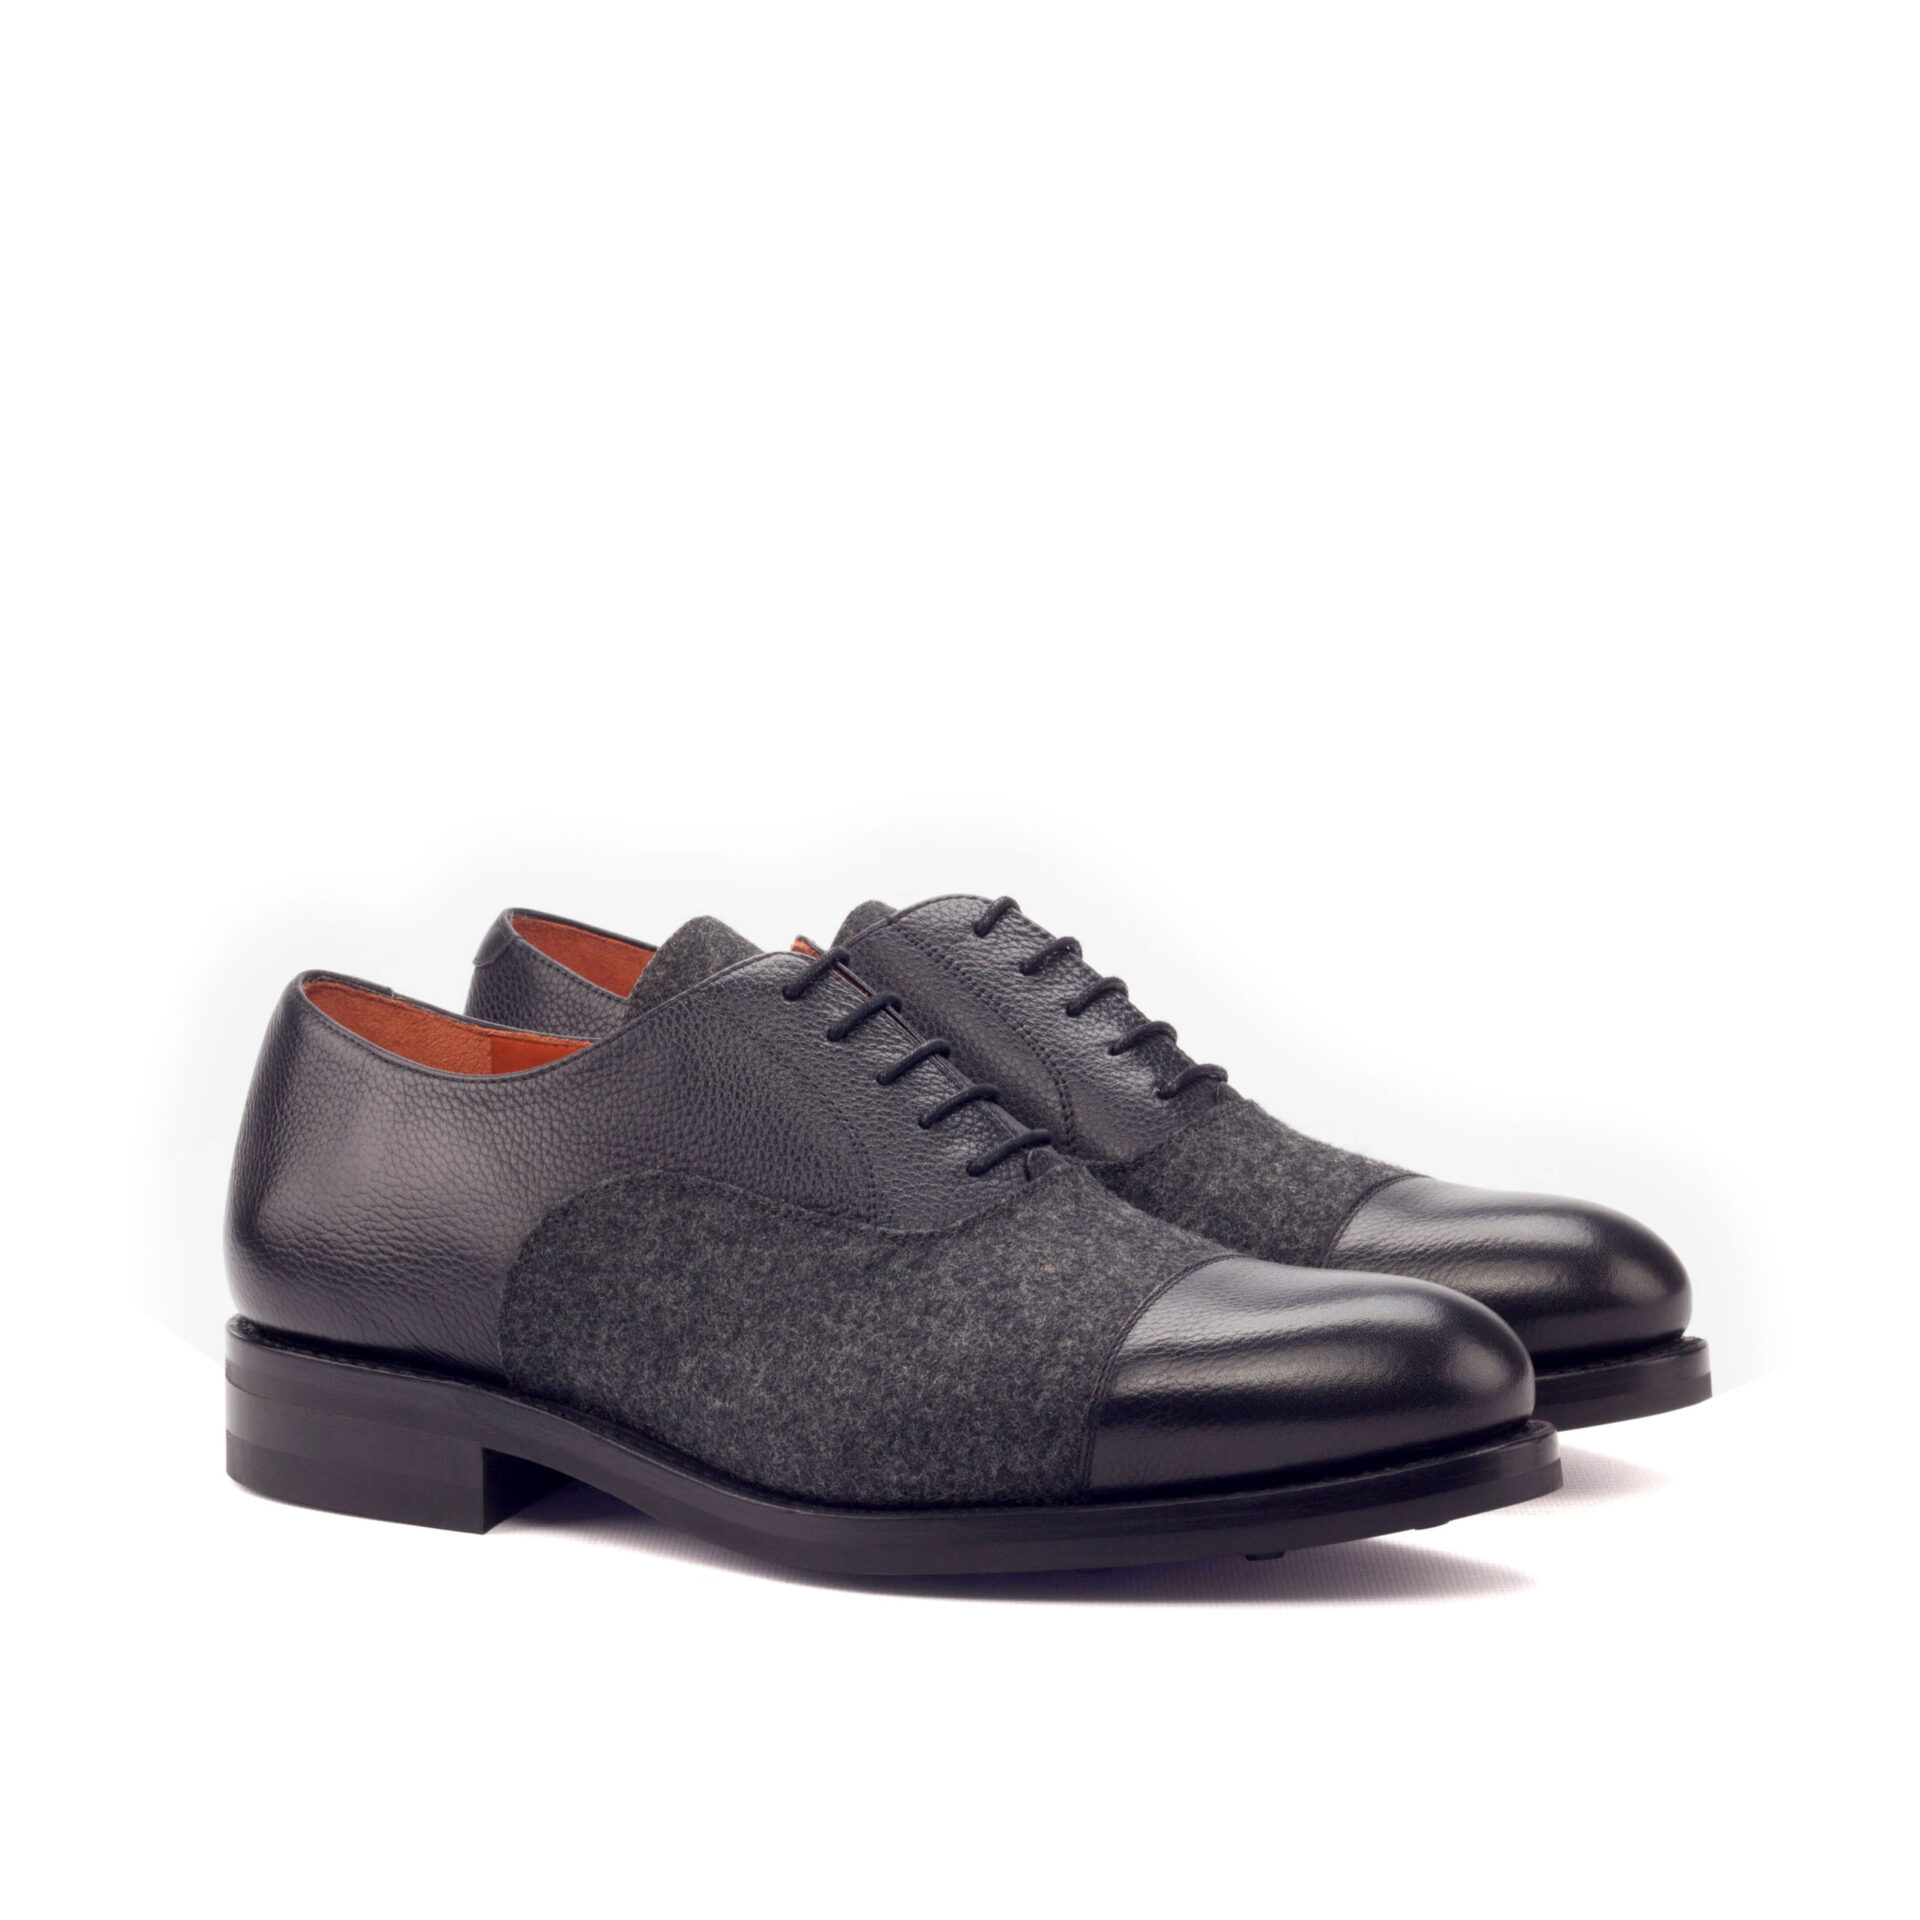 Goodyear Welted Oxford Shoe